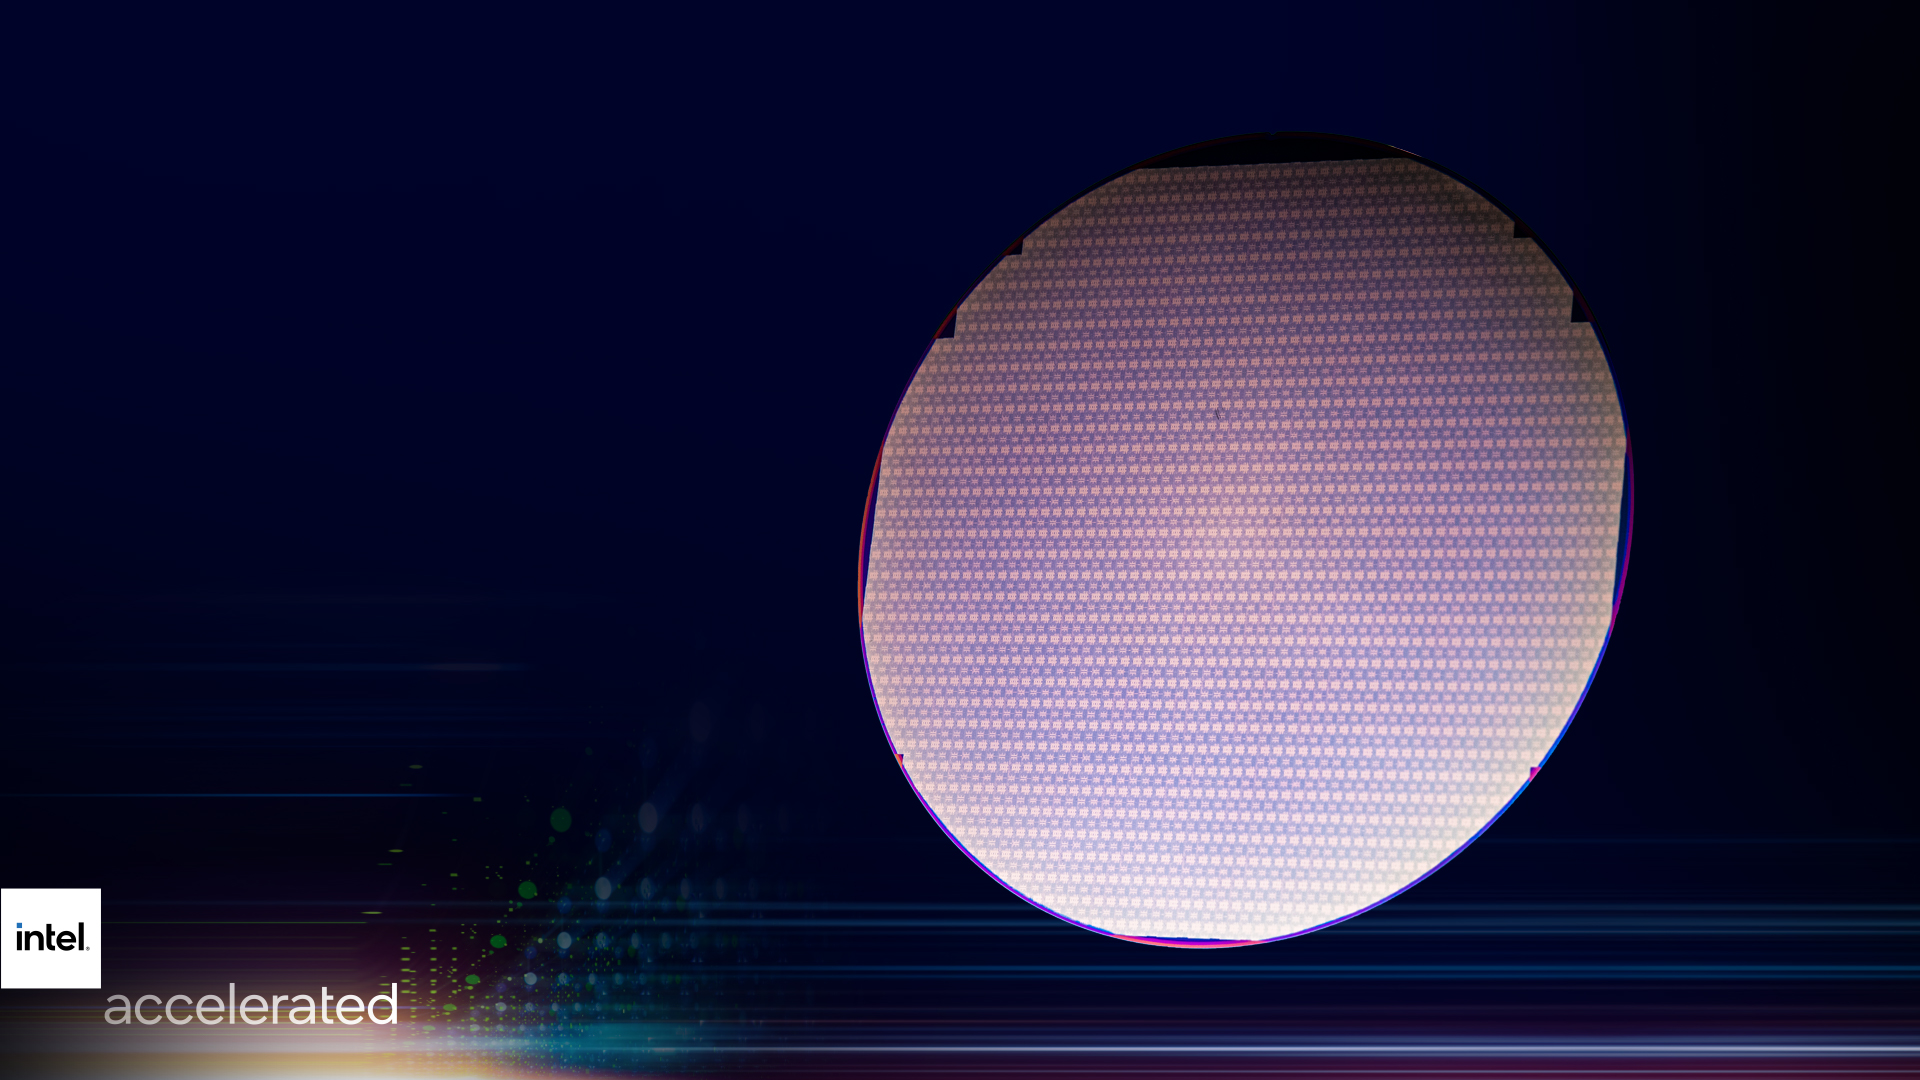 Intel-Accelerated-Wafer-1